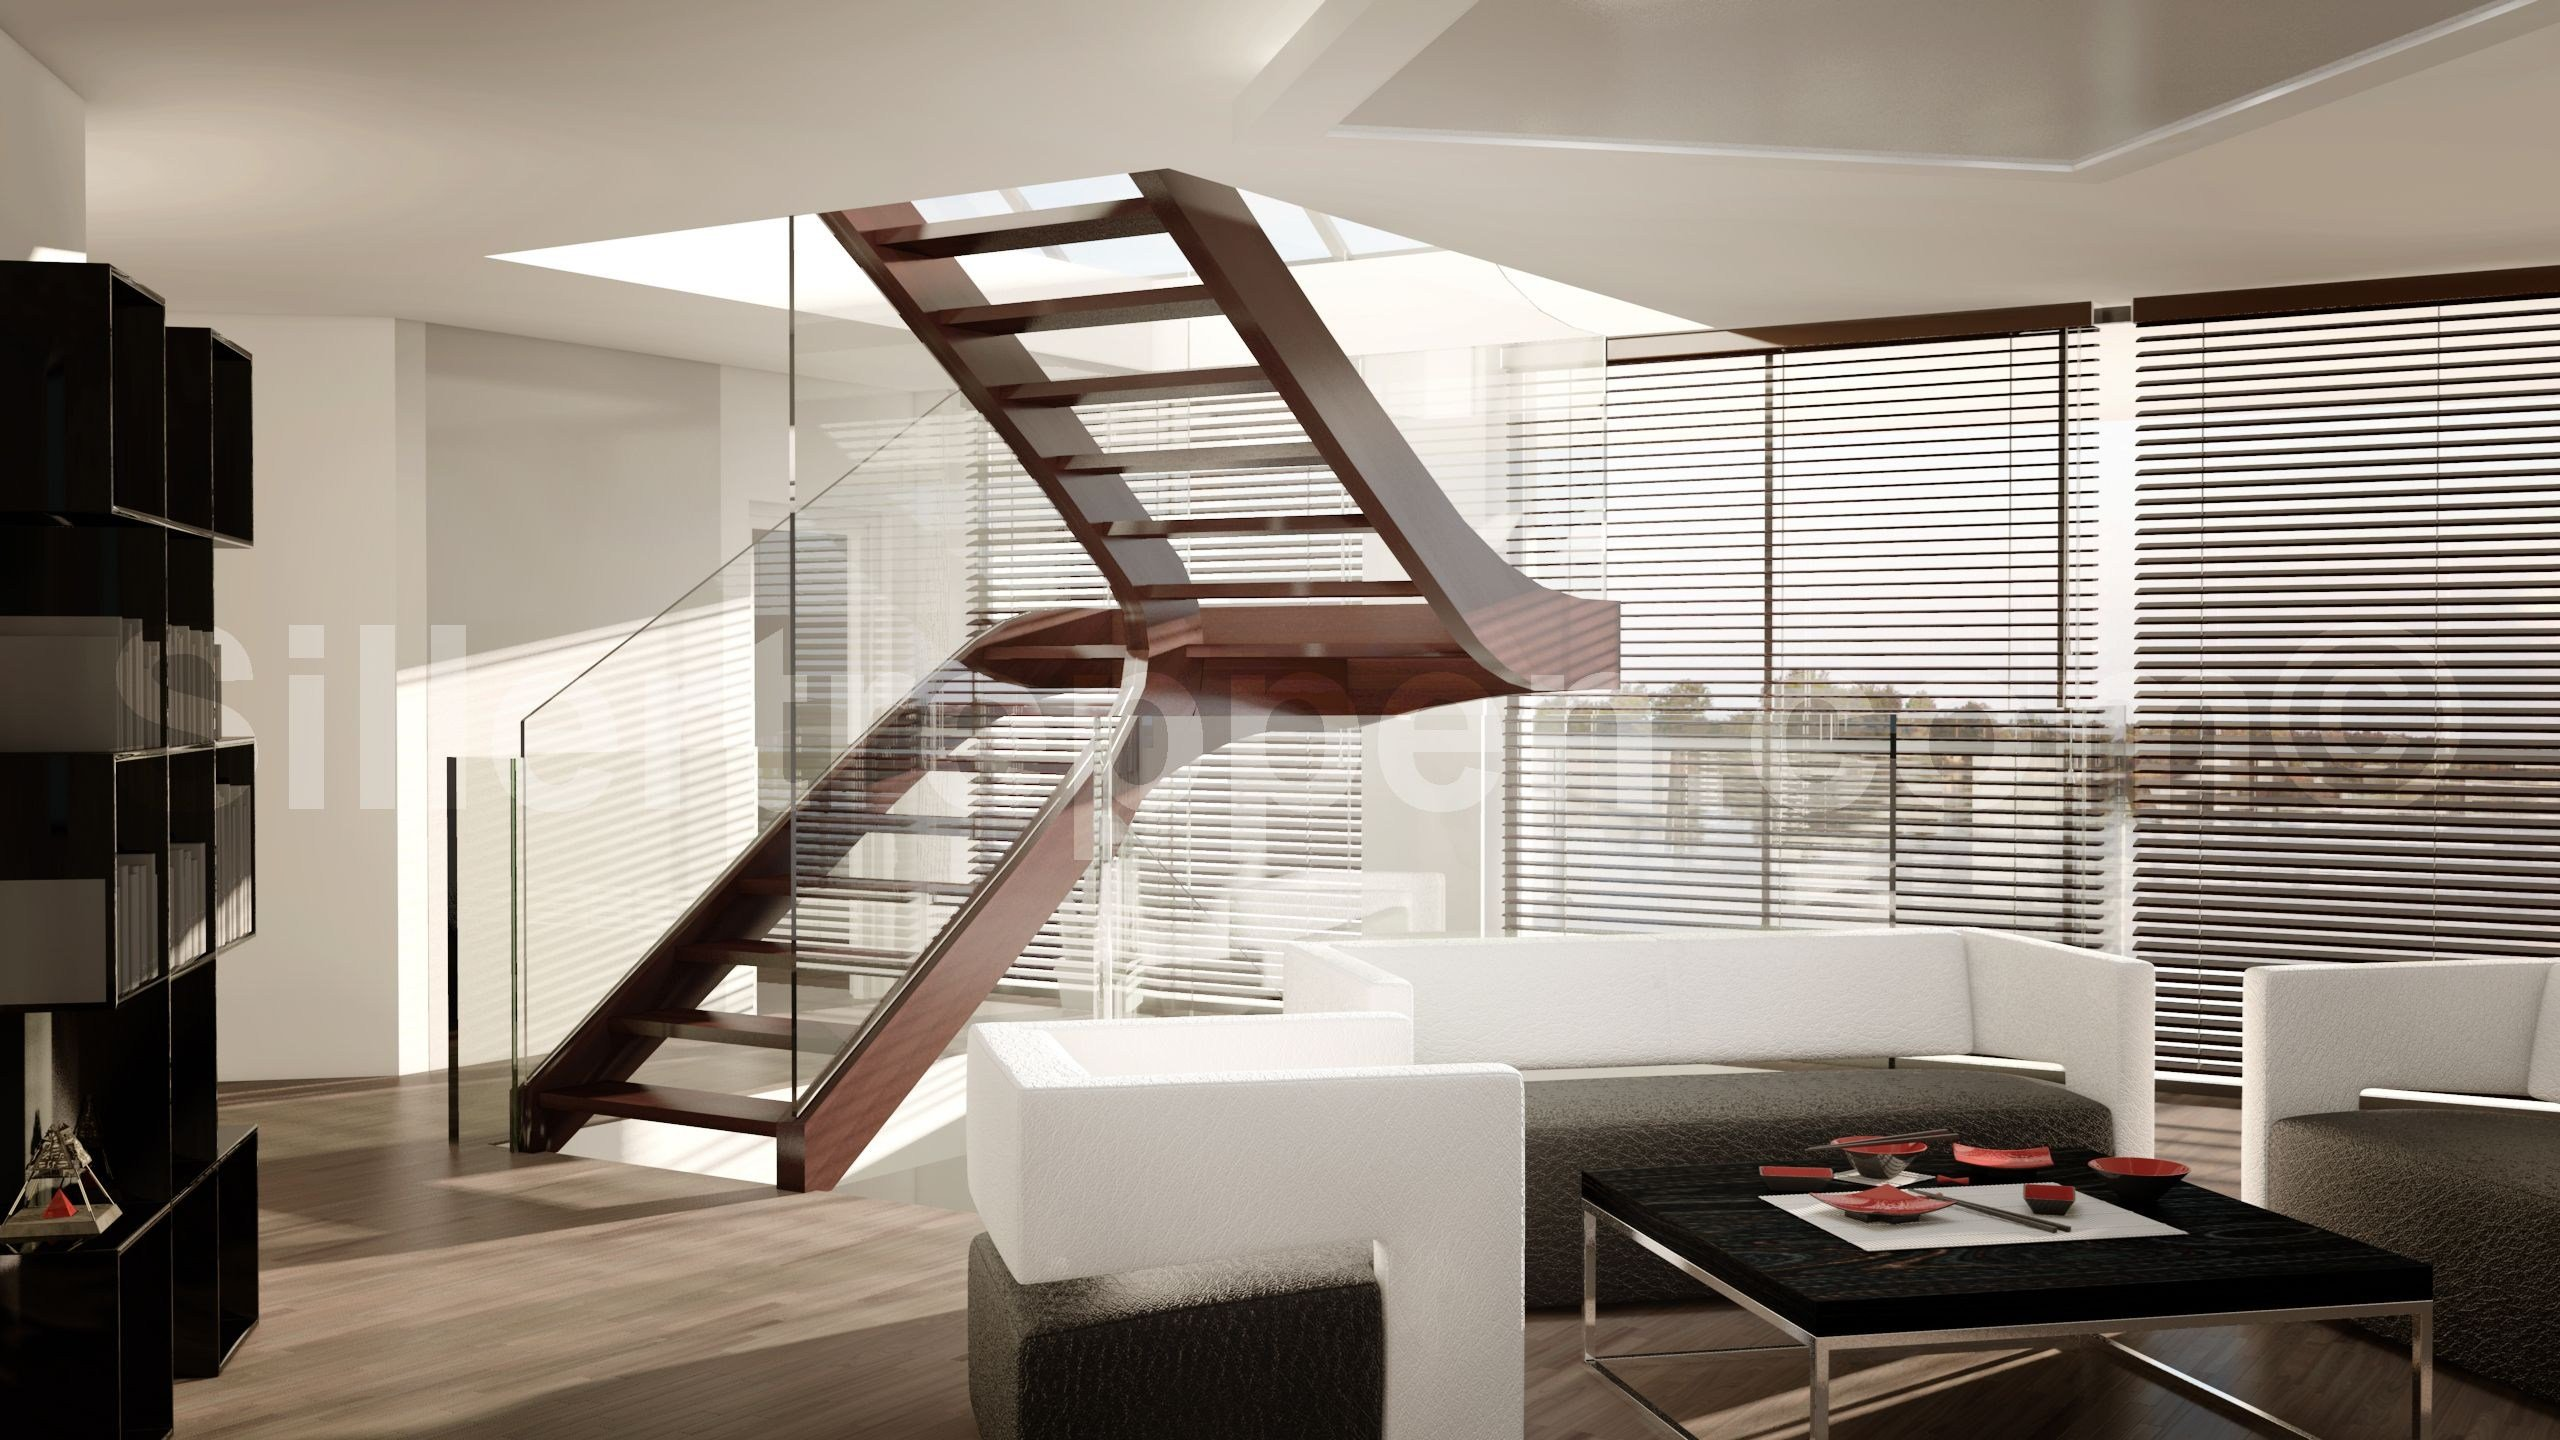 Stairs Treppen wallpaper